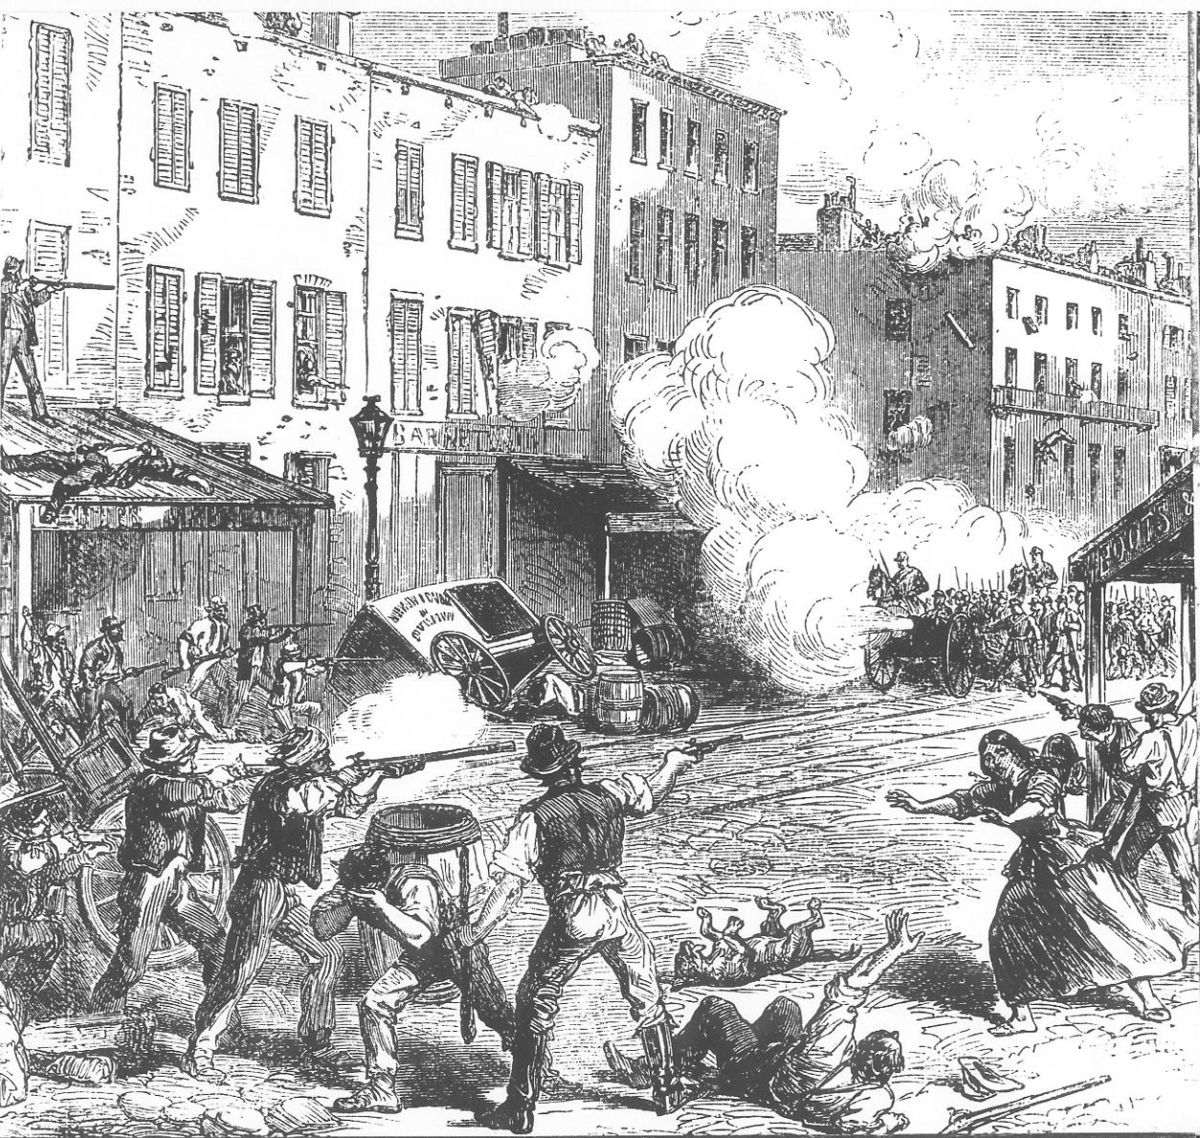 New York City draft riots - Wikipedia